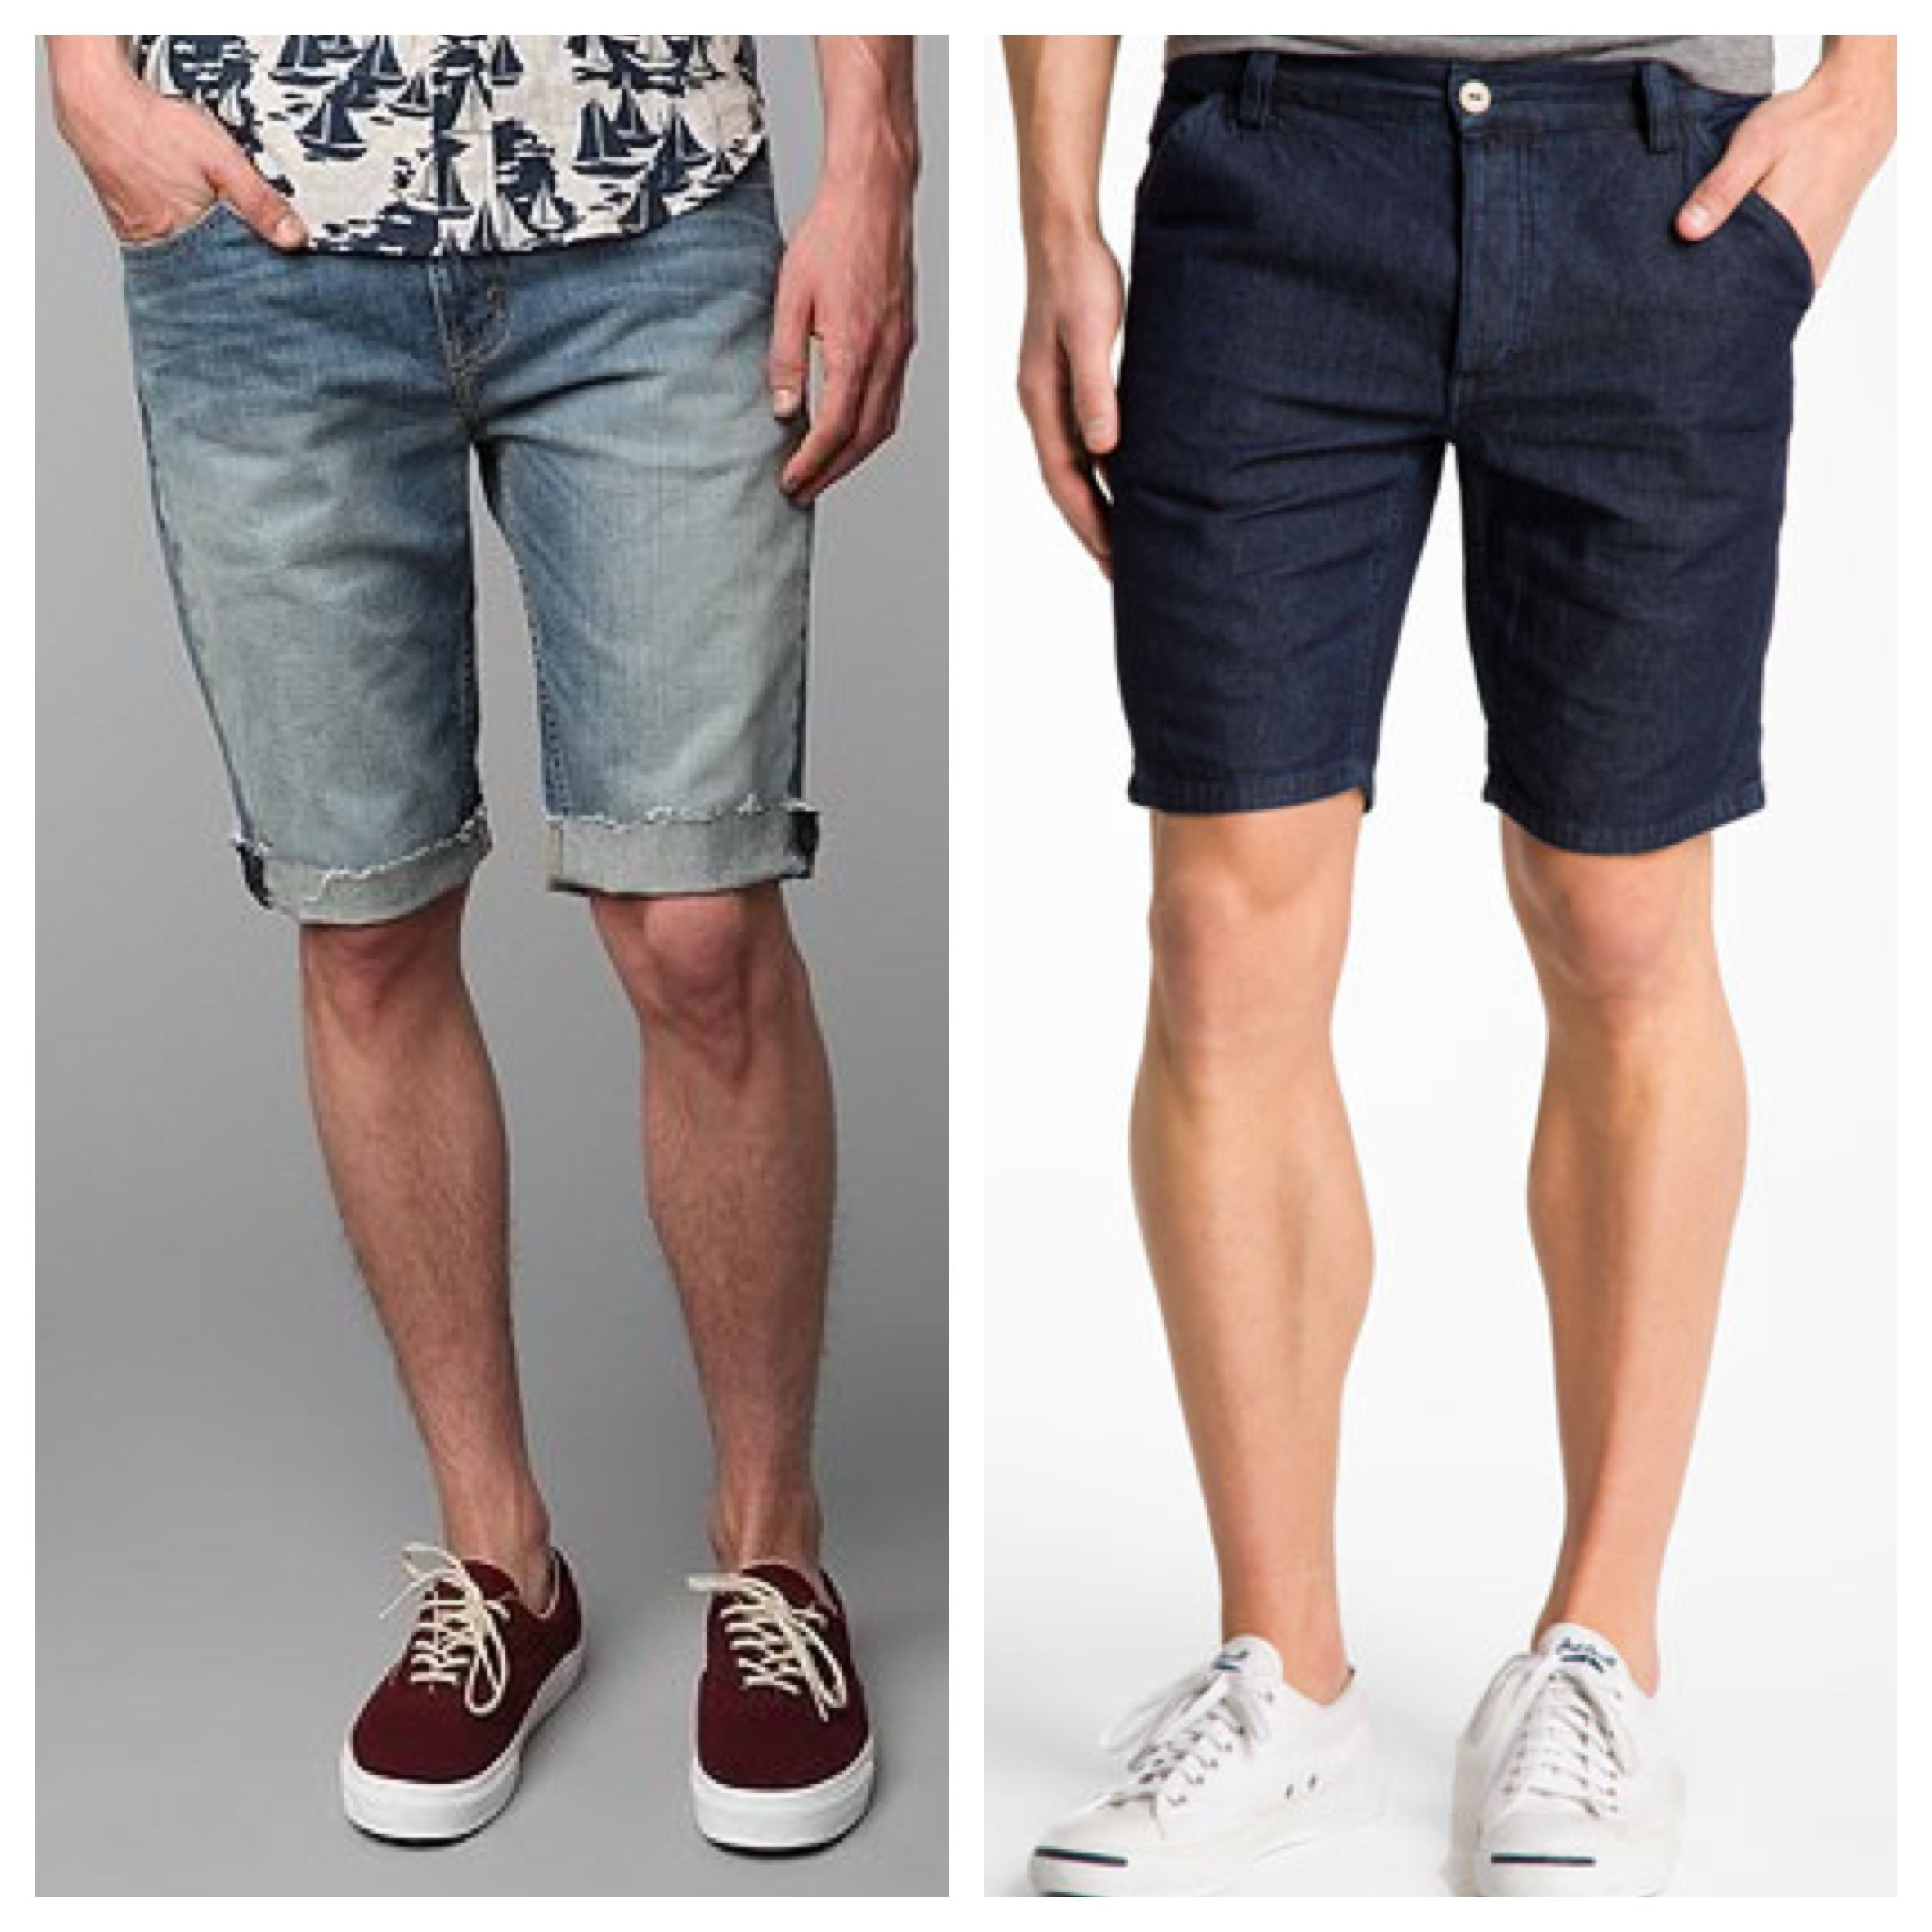 New Mens Shorts Styles - The Else